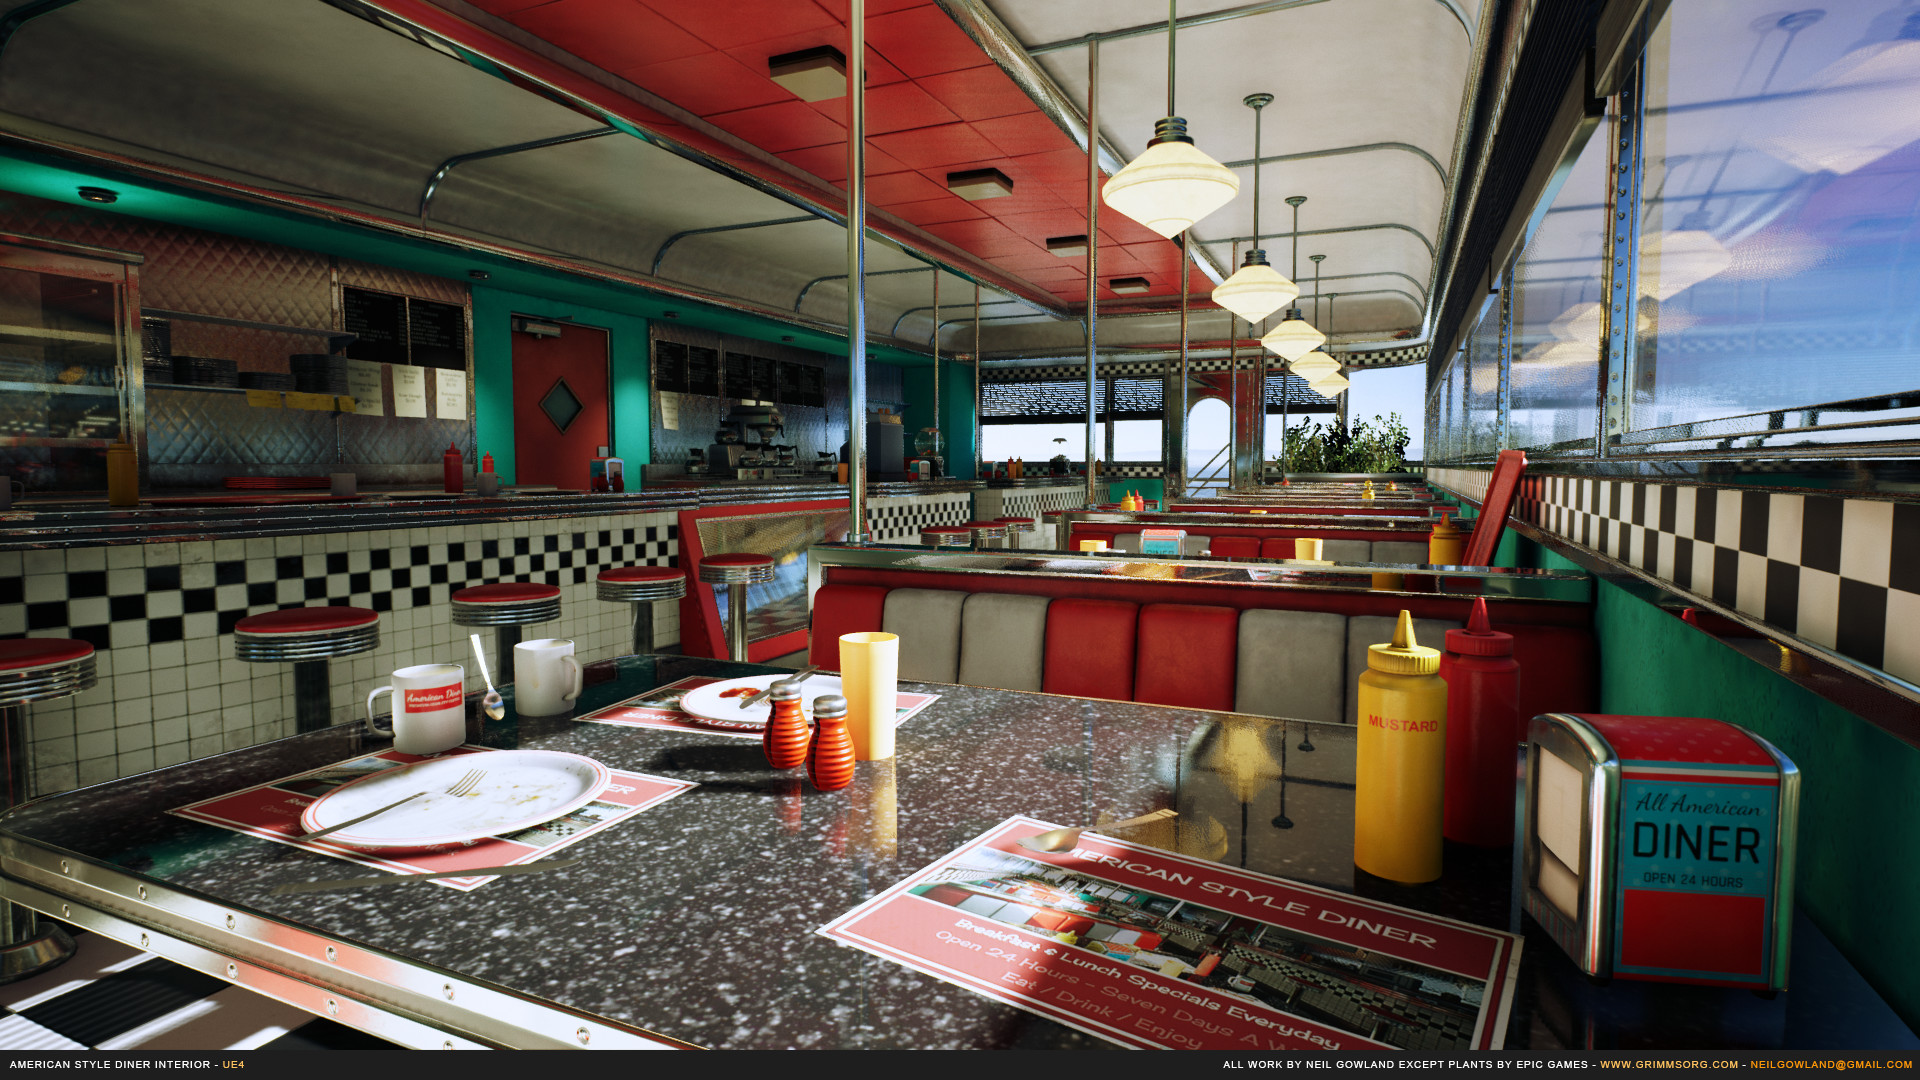 Neil gowland americanstylediner screenshot 02